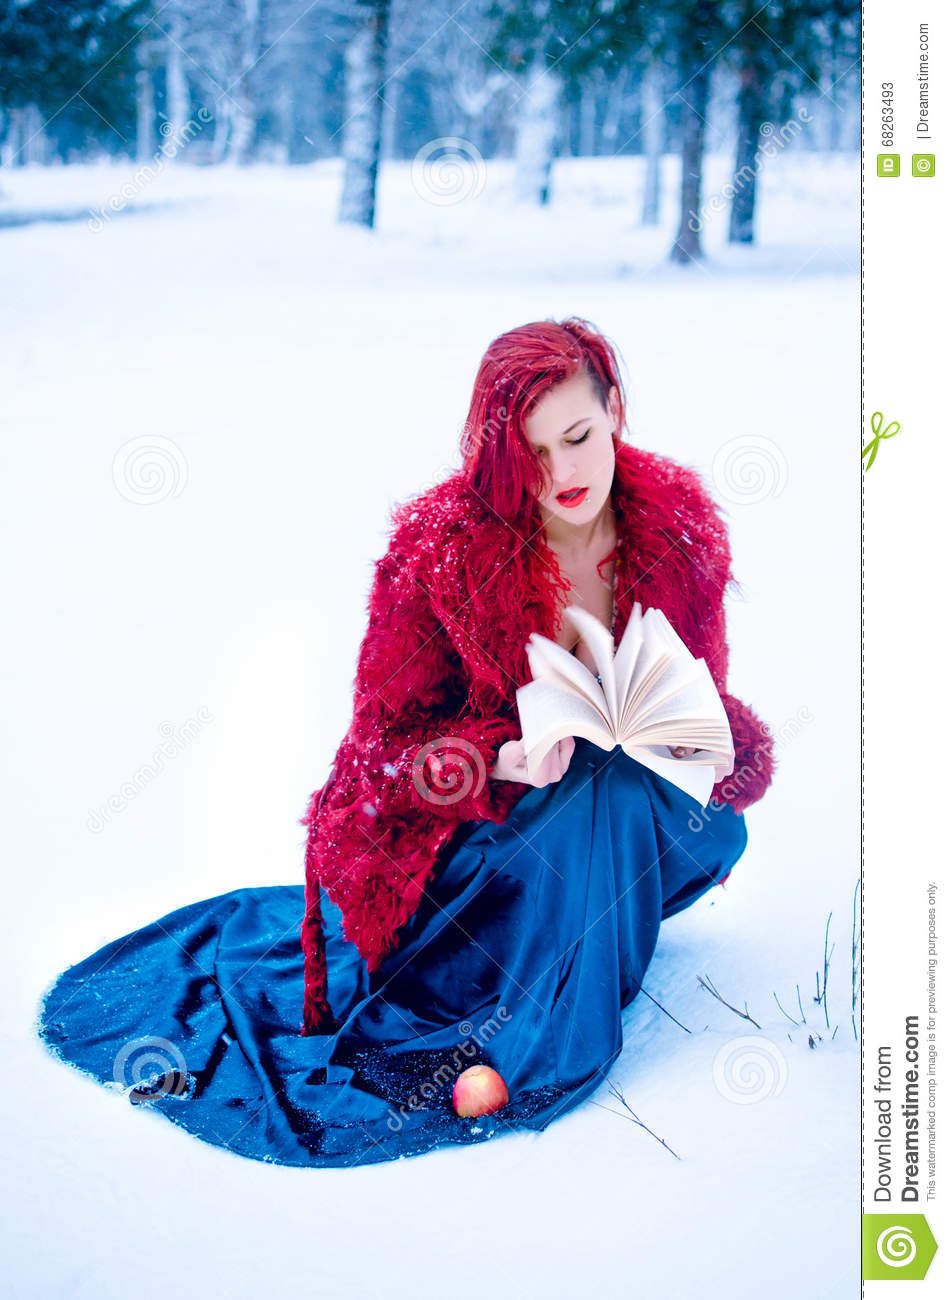 Snow Queen Winter Yong Girl In Forest Stock Photo